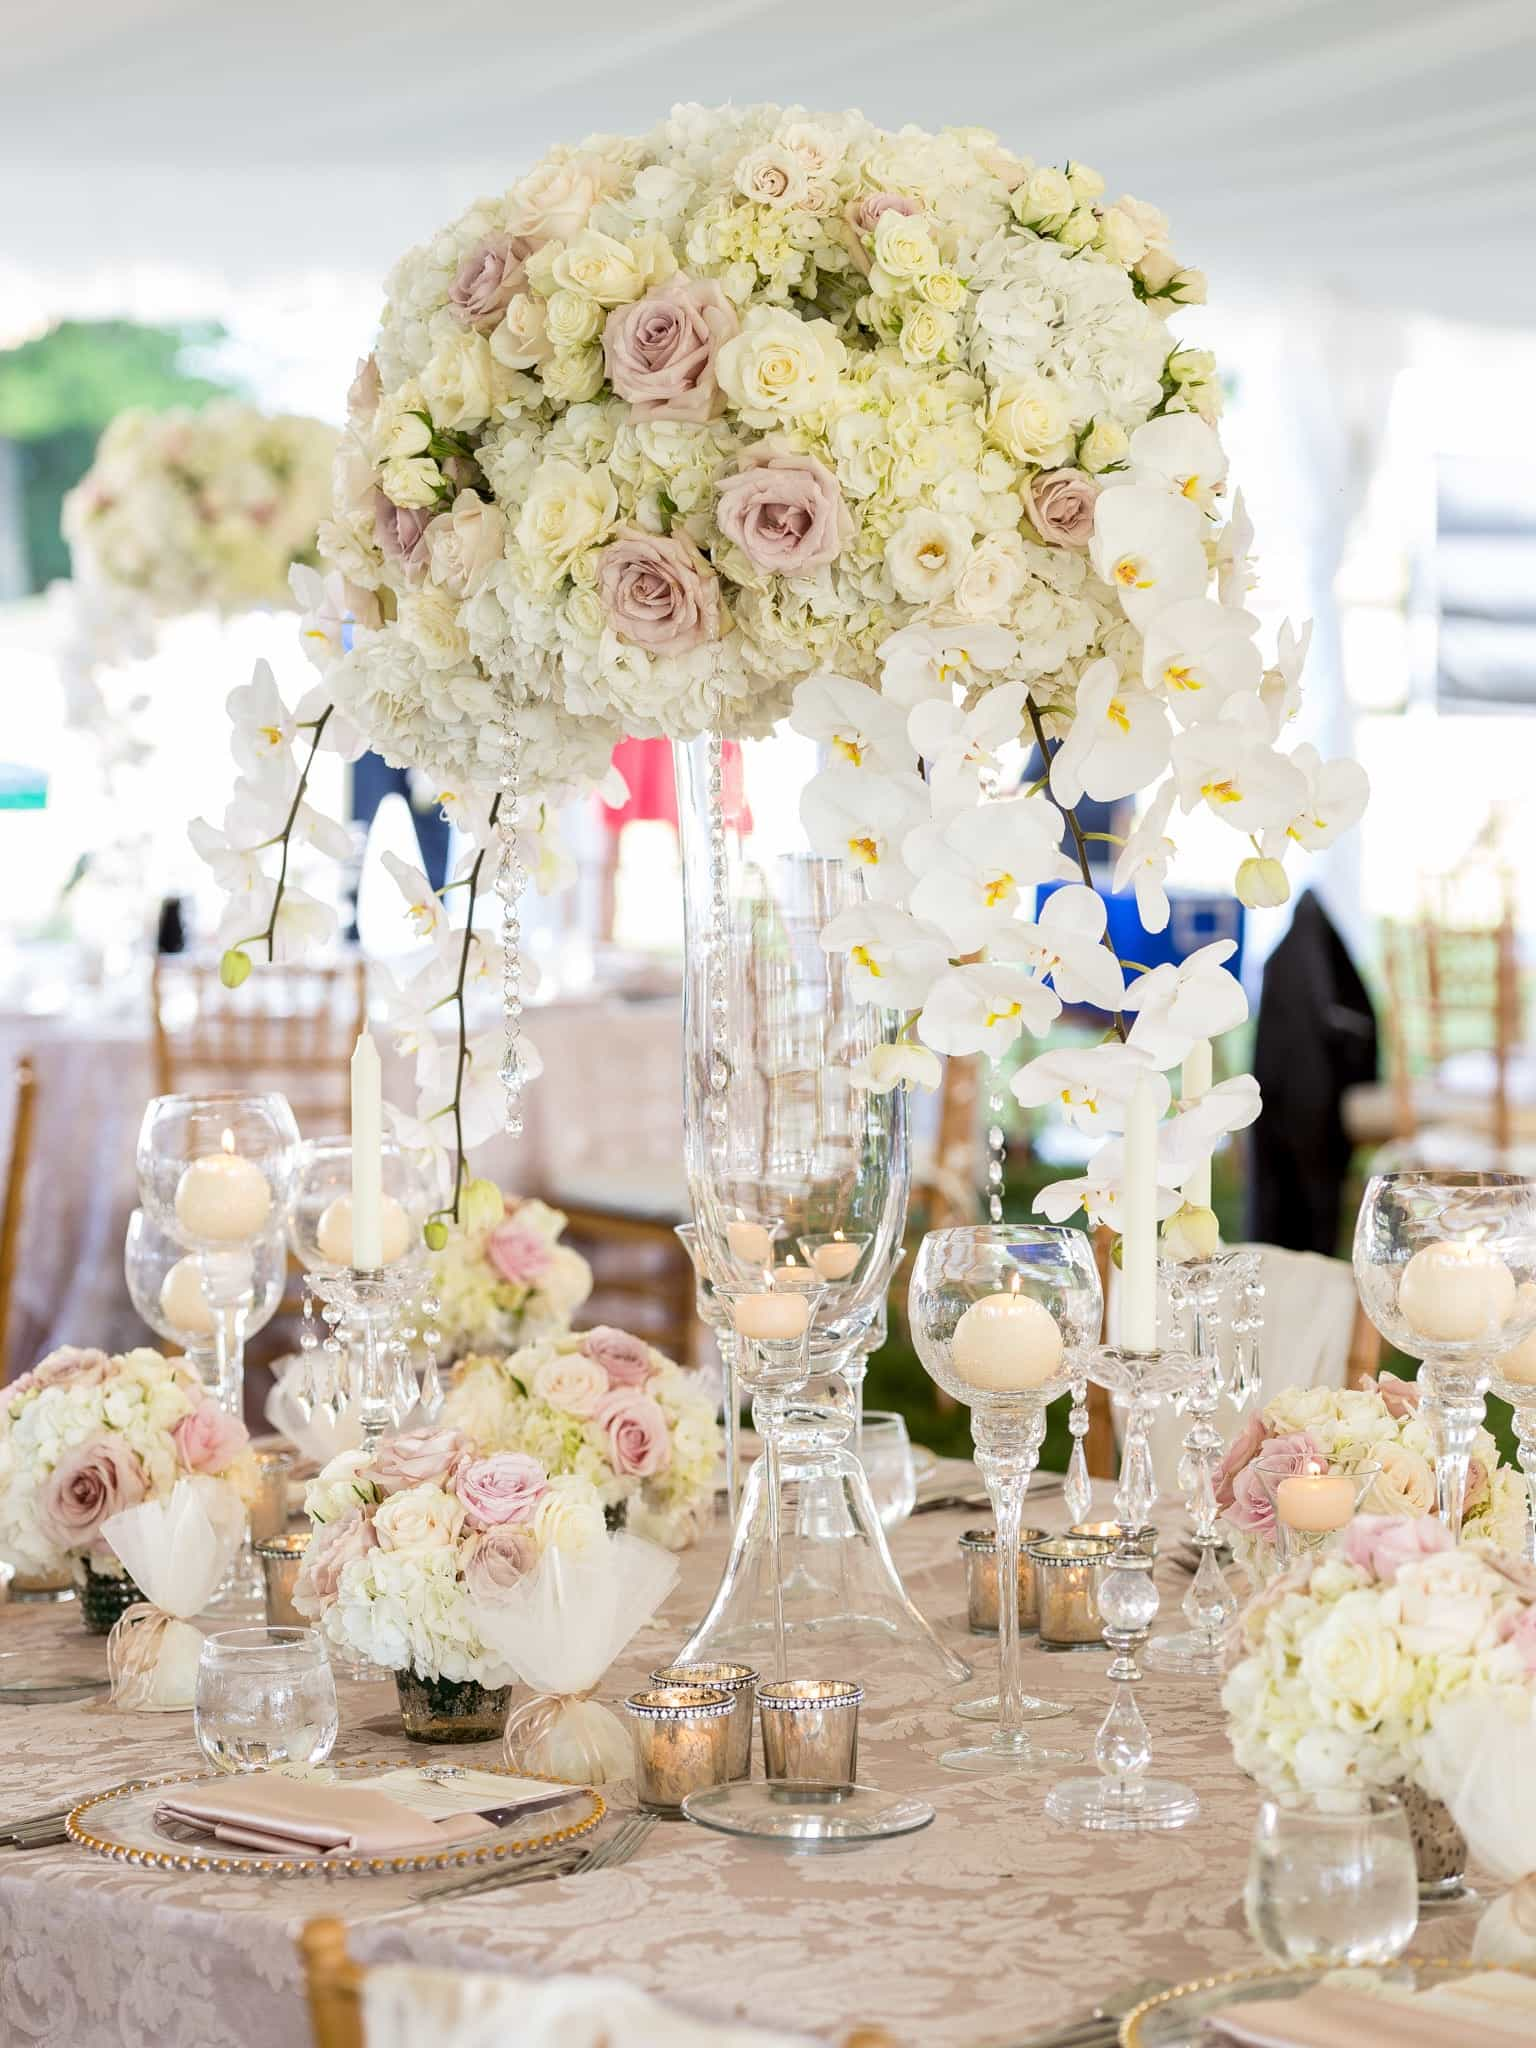 How To Choose The Right Wedding Centerpieces For Round Table? #1122 ...